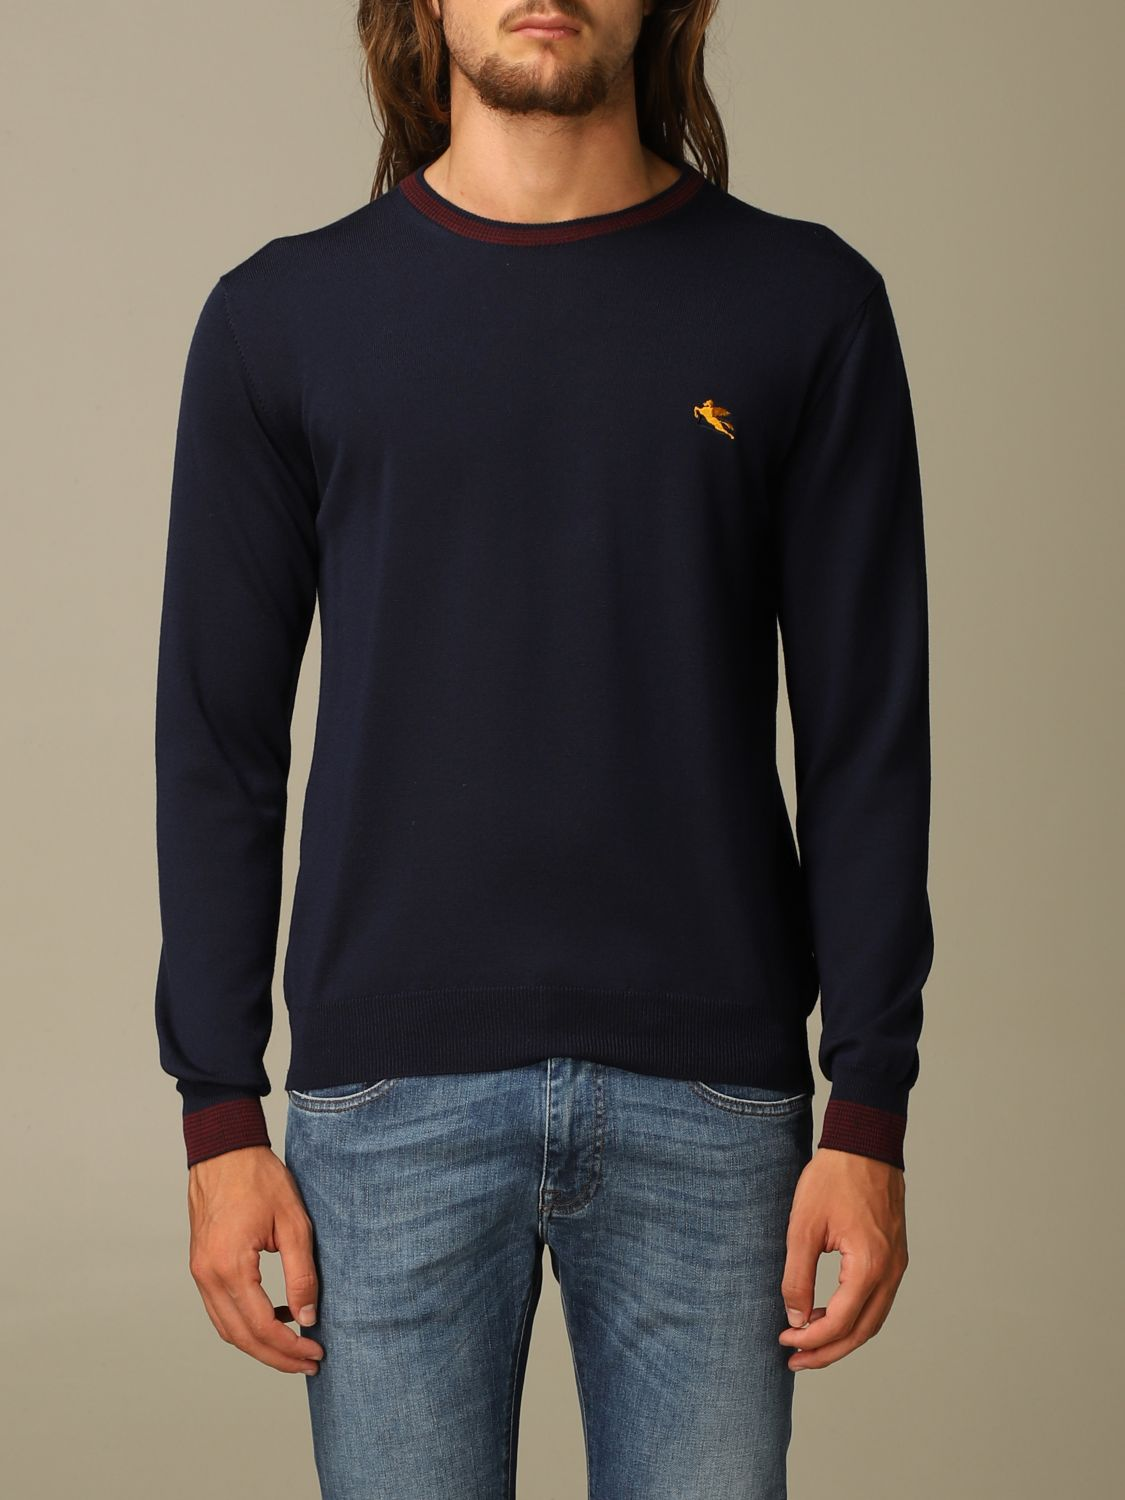 Sweater Etro: Etro wool sweater with embroidered Pegasus navy 1